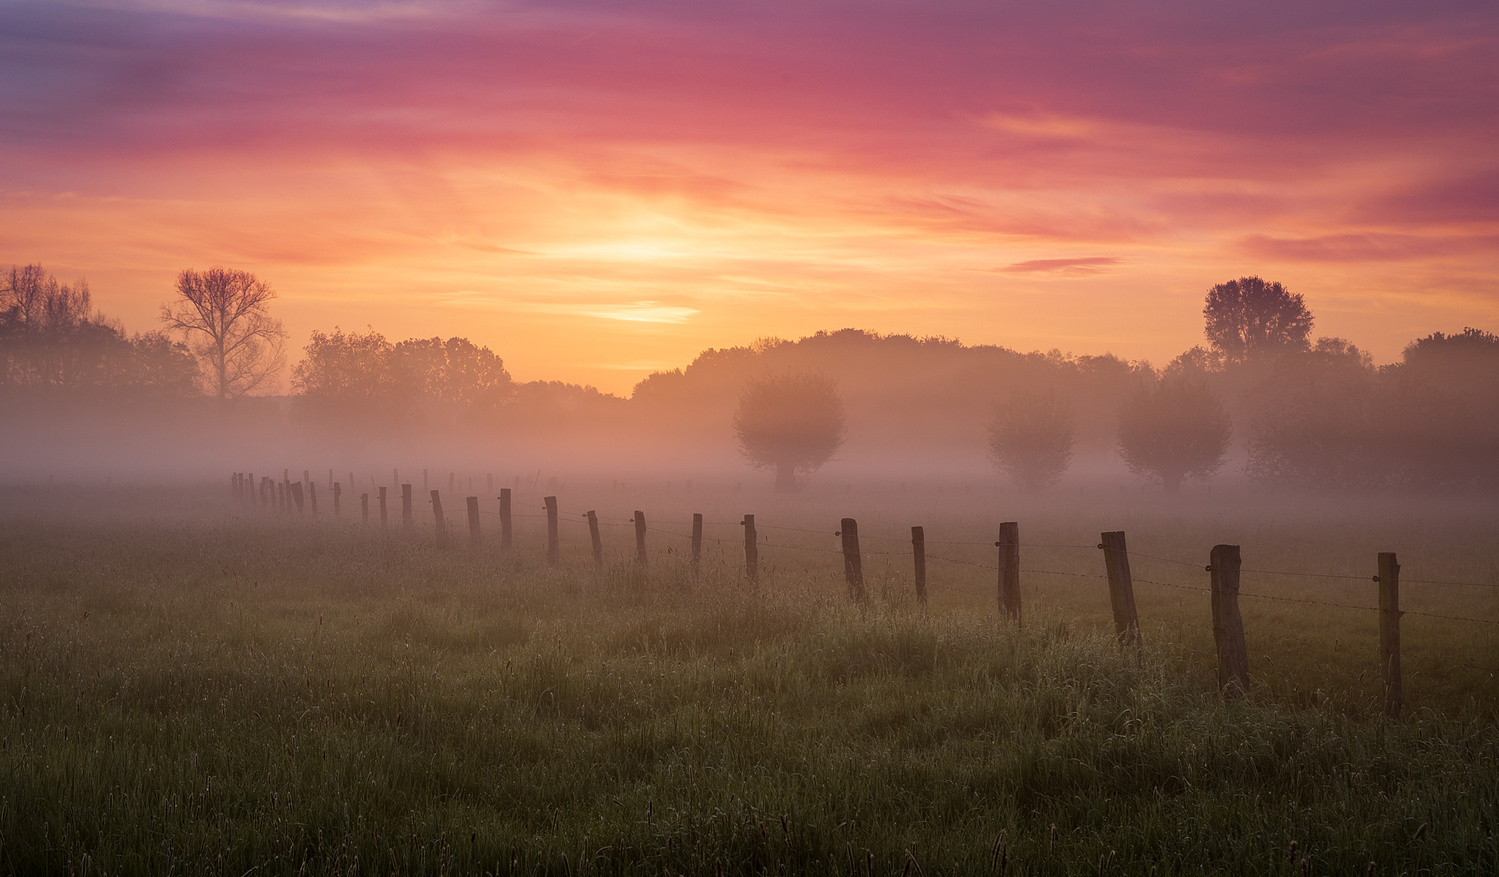 Early morning by Axel Jusseit